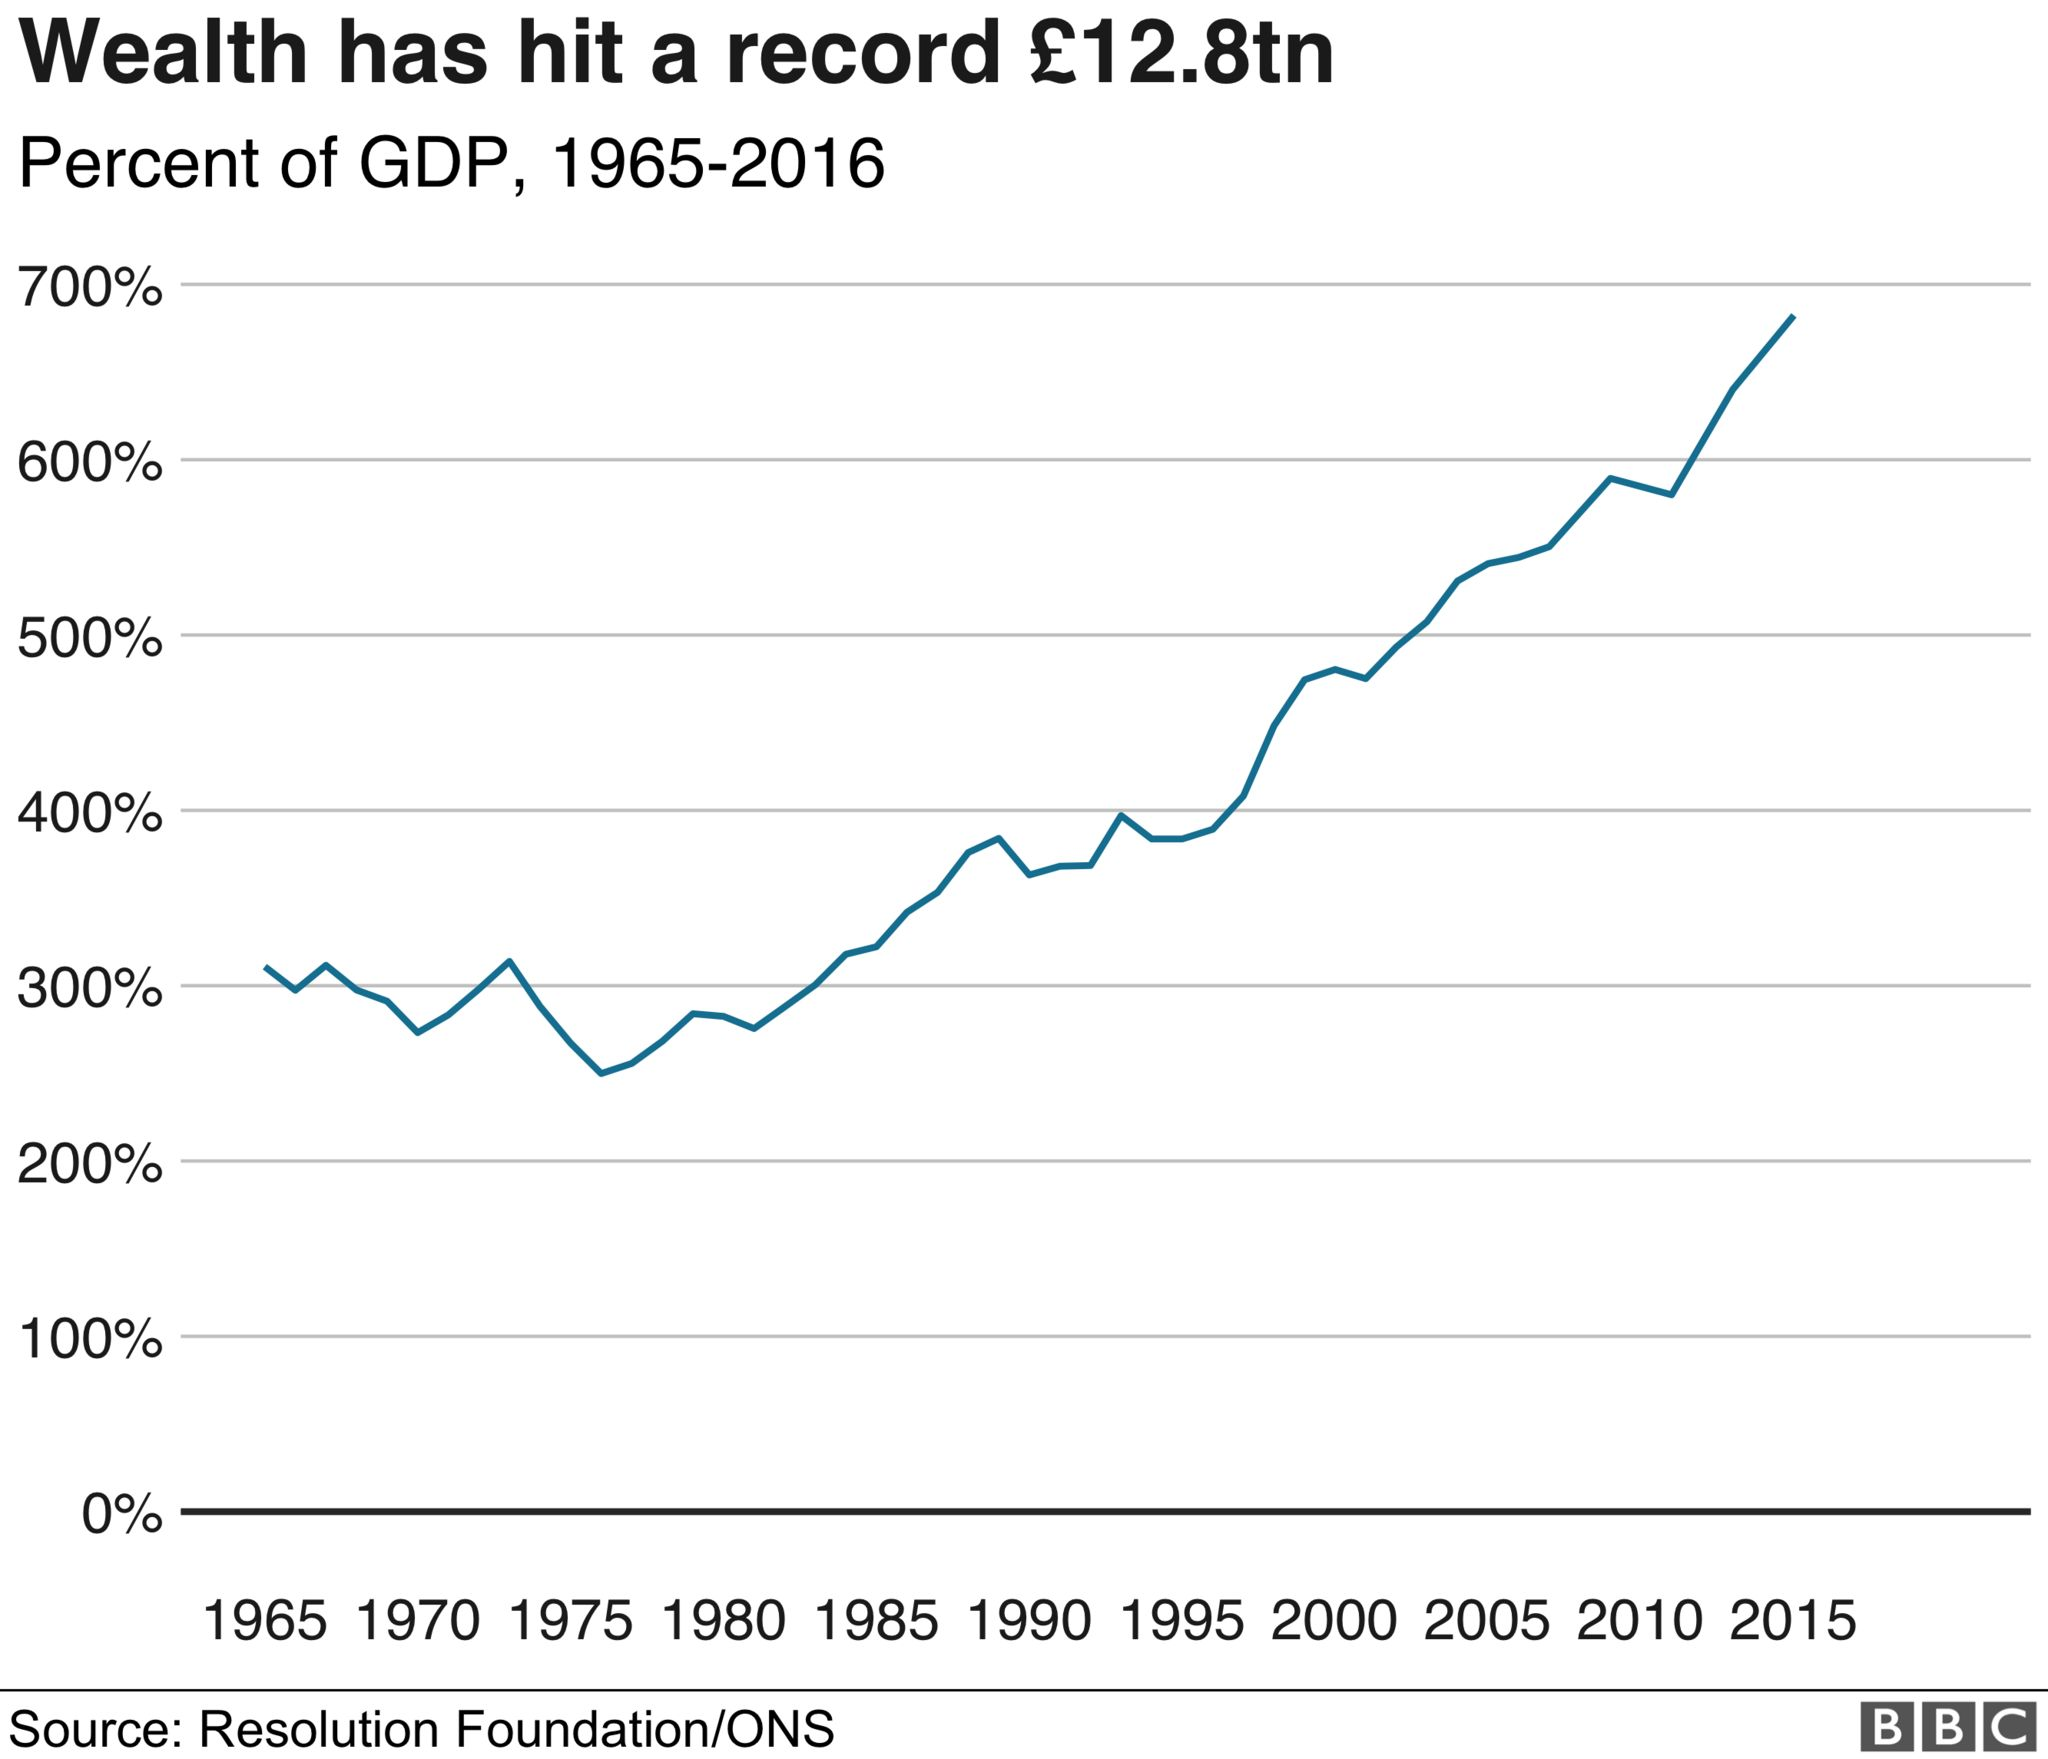 Chart showing how the overall wealth has risen over time